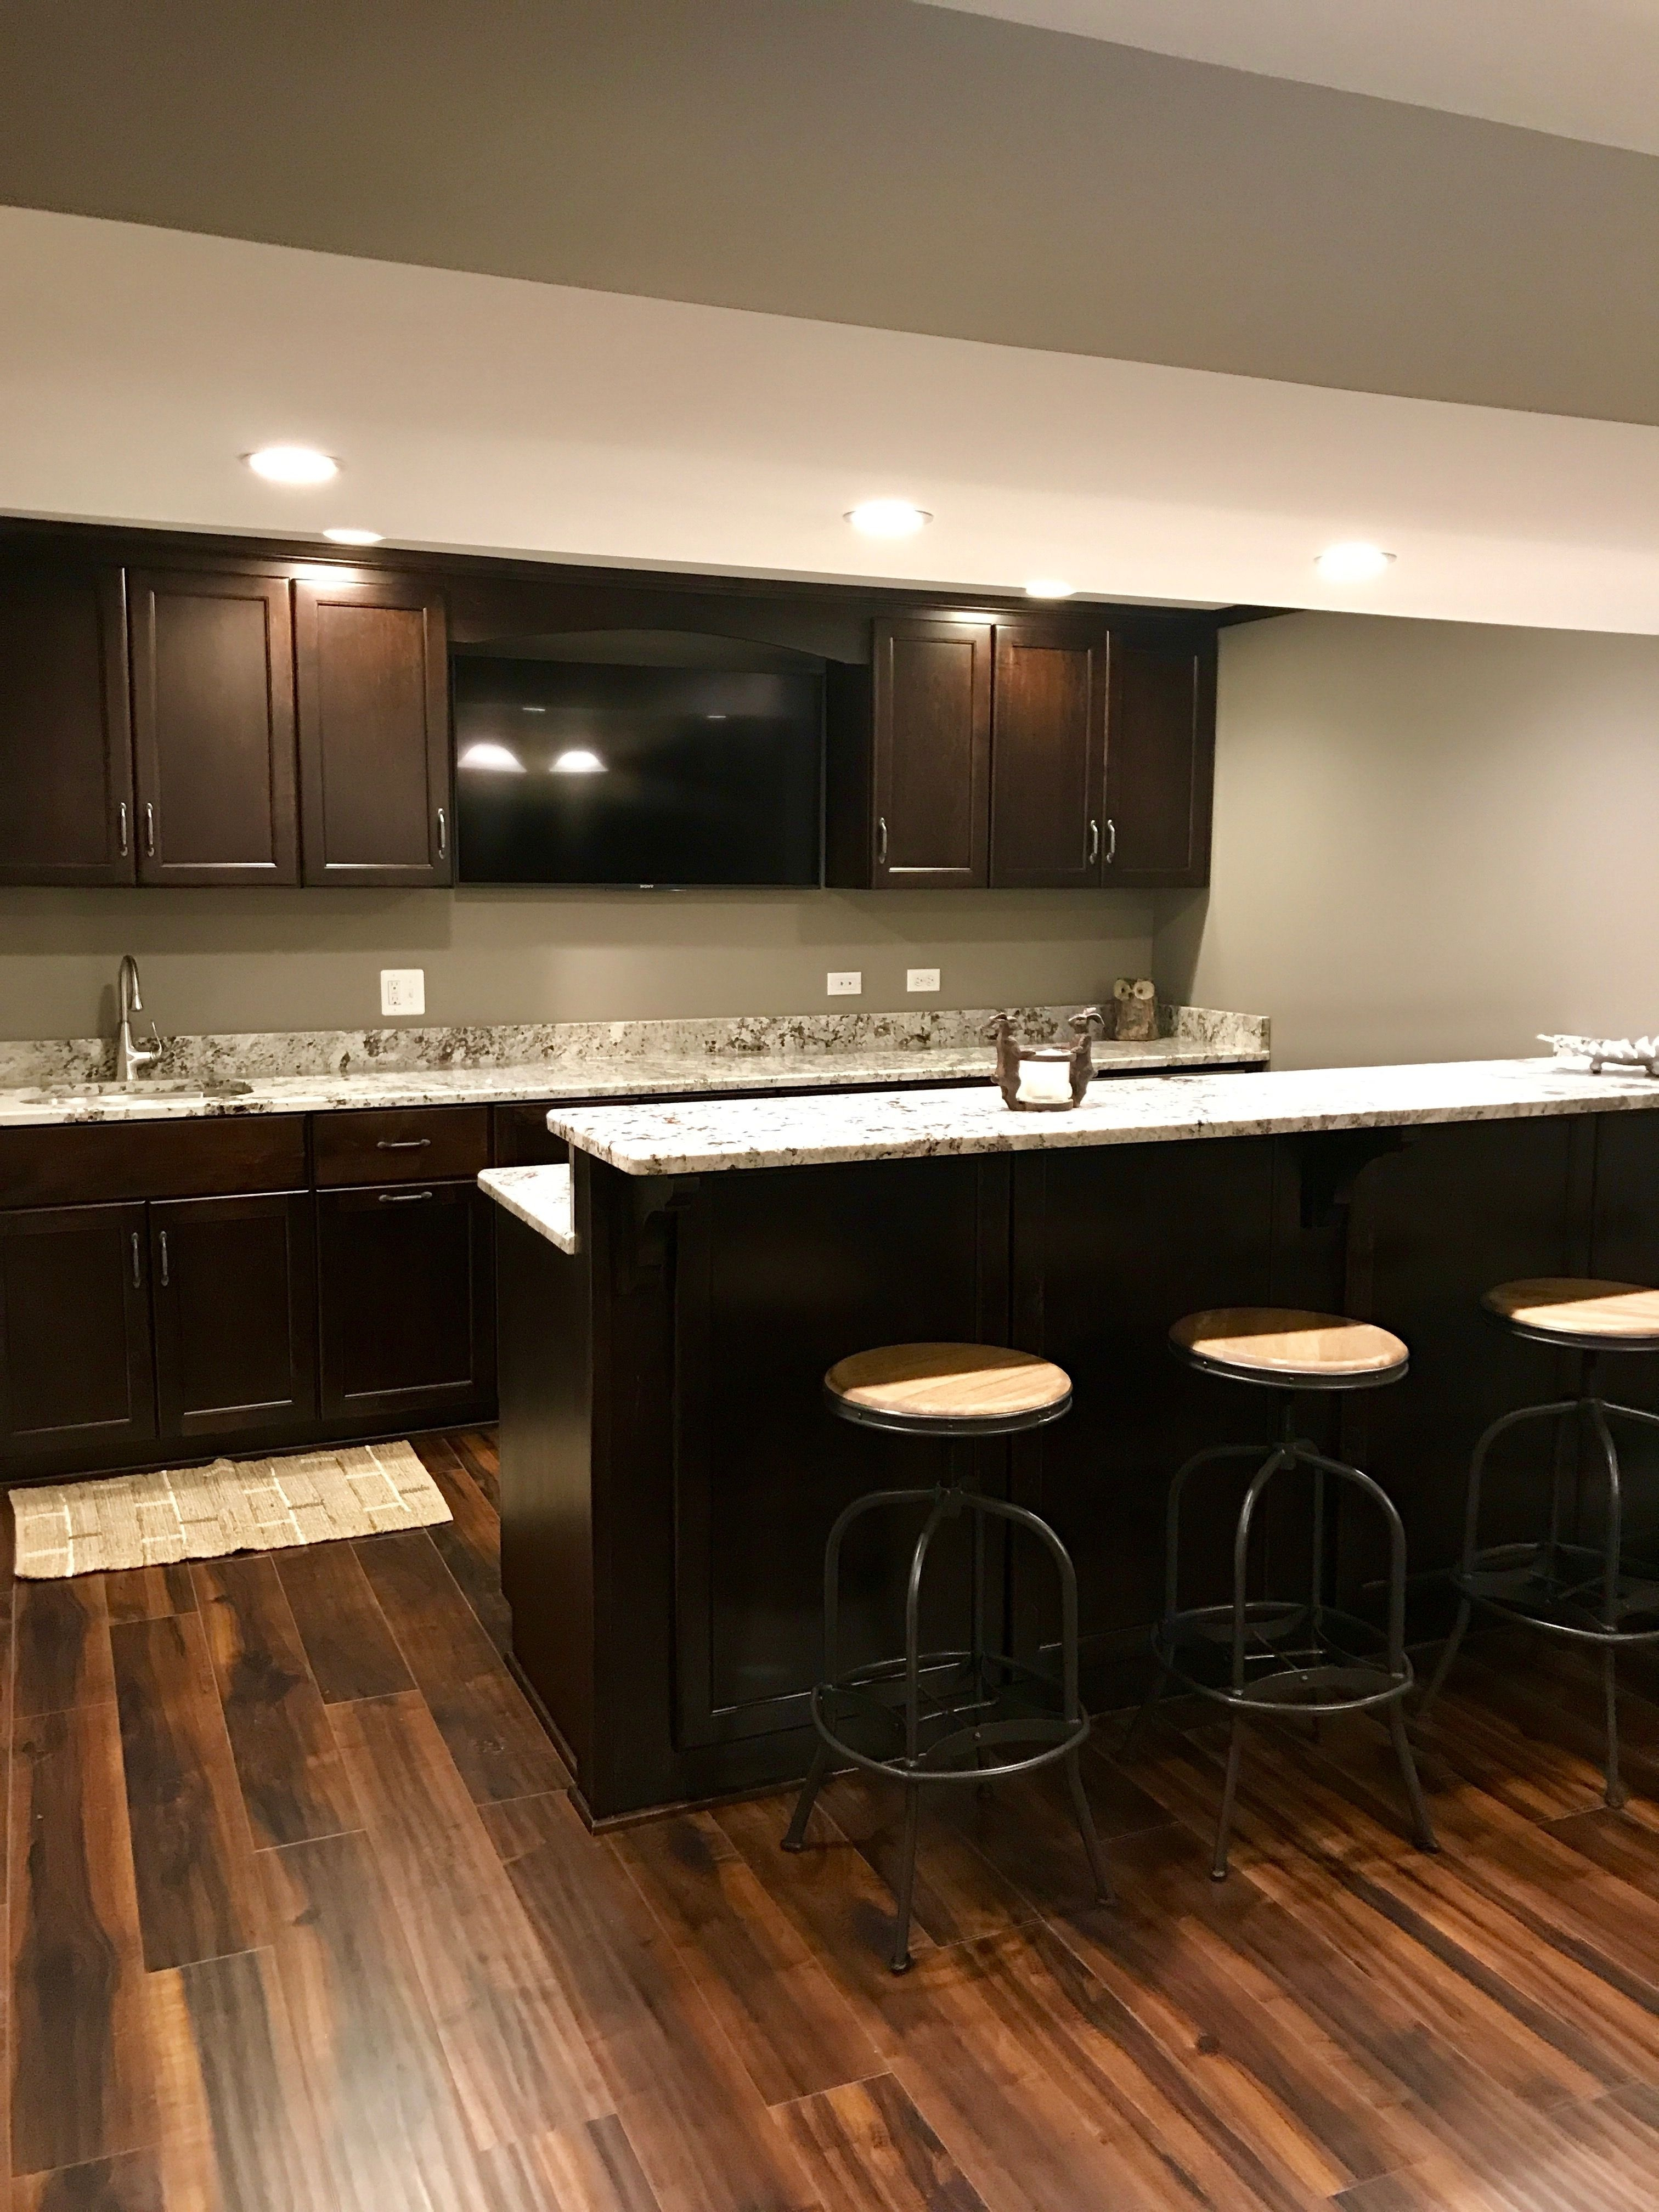 Finished Basement Kitchen Alaskan White Granite and Dark